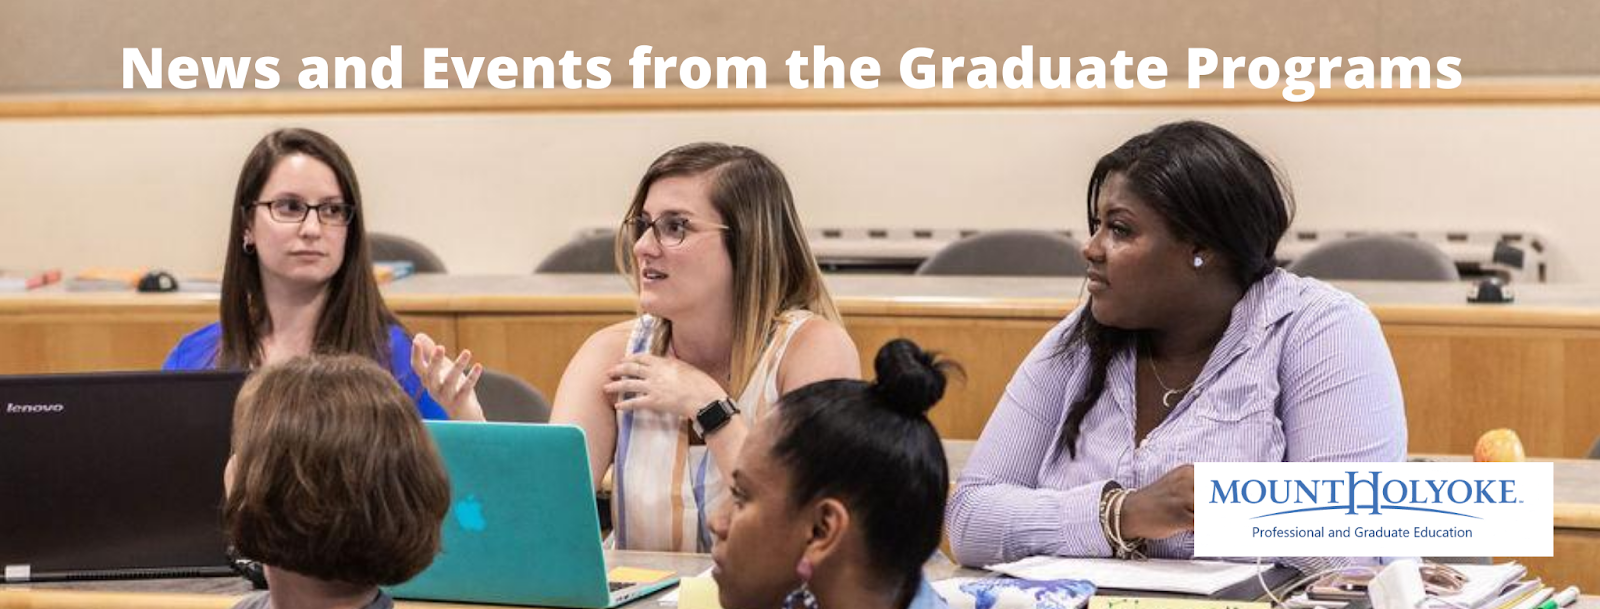 News and Events from the Graduate Programs